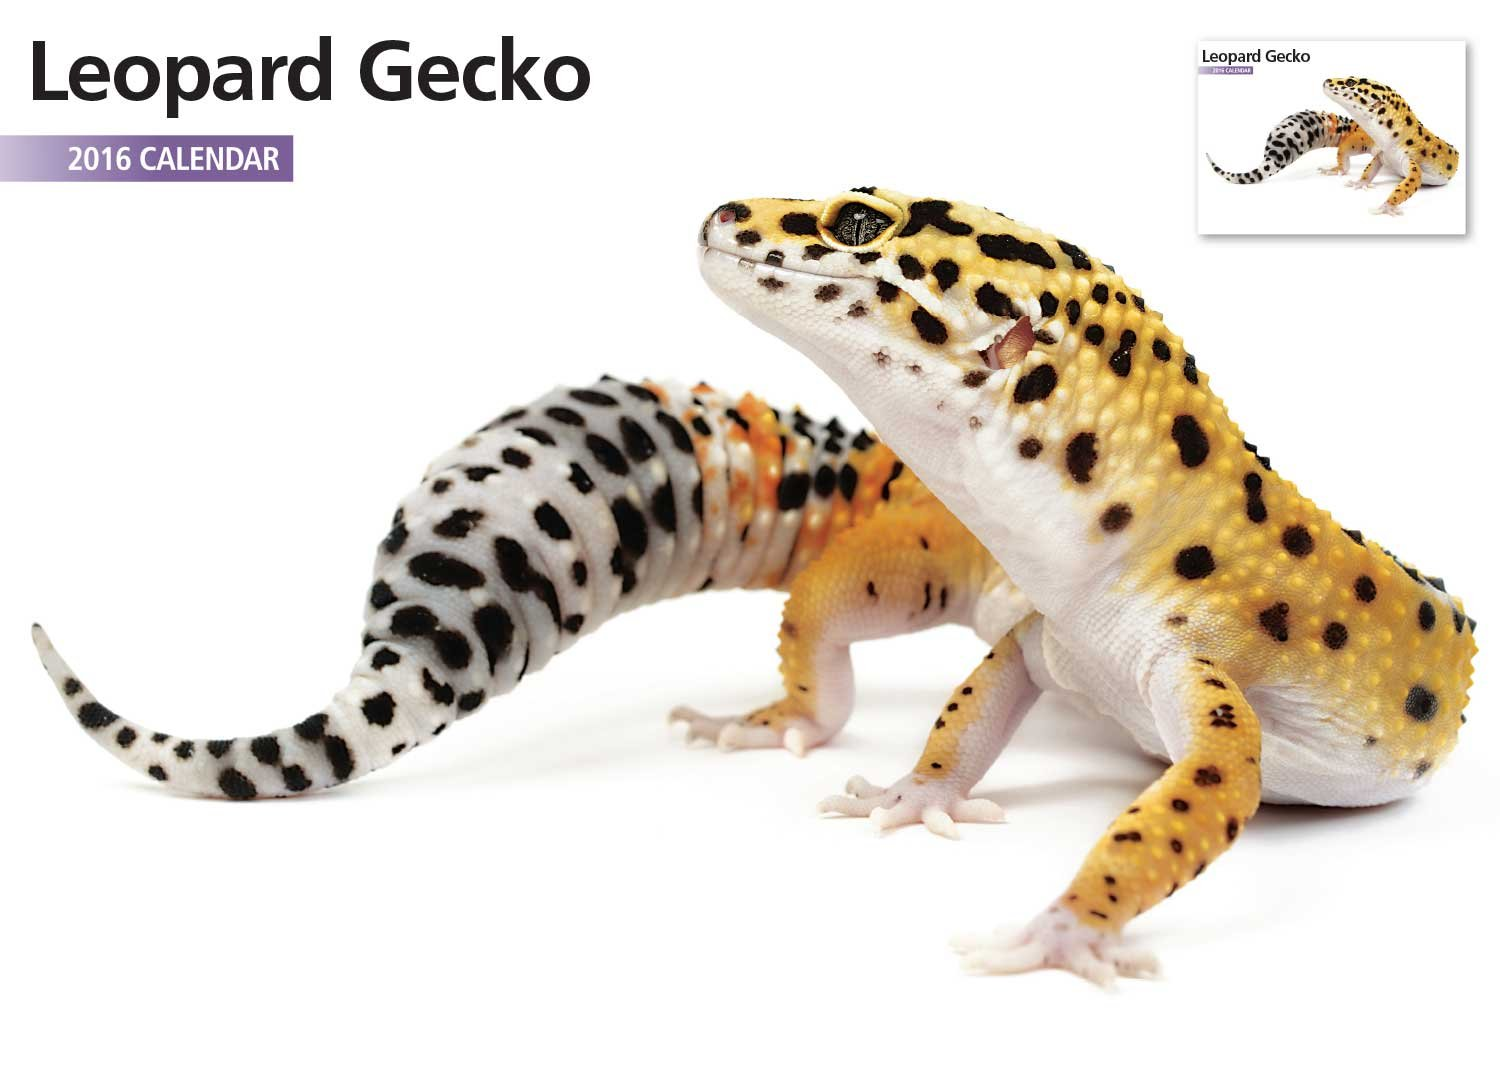 Leopard Gecko Price In International Market Image